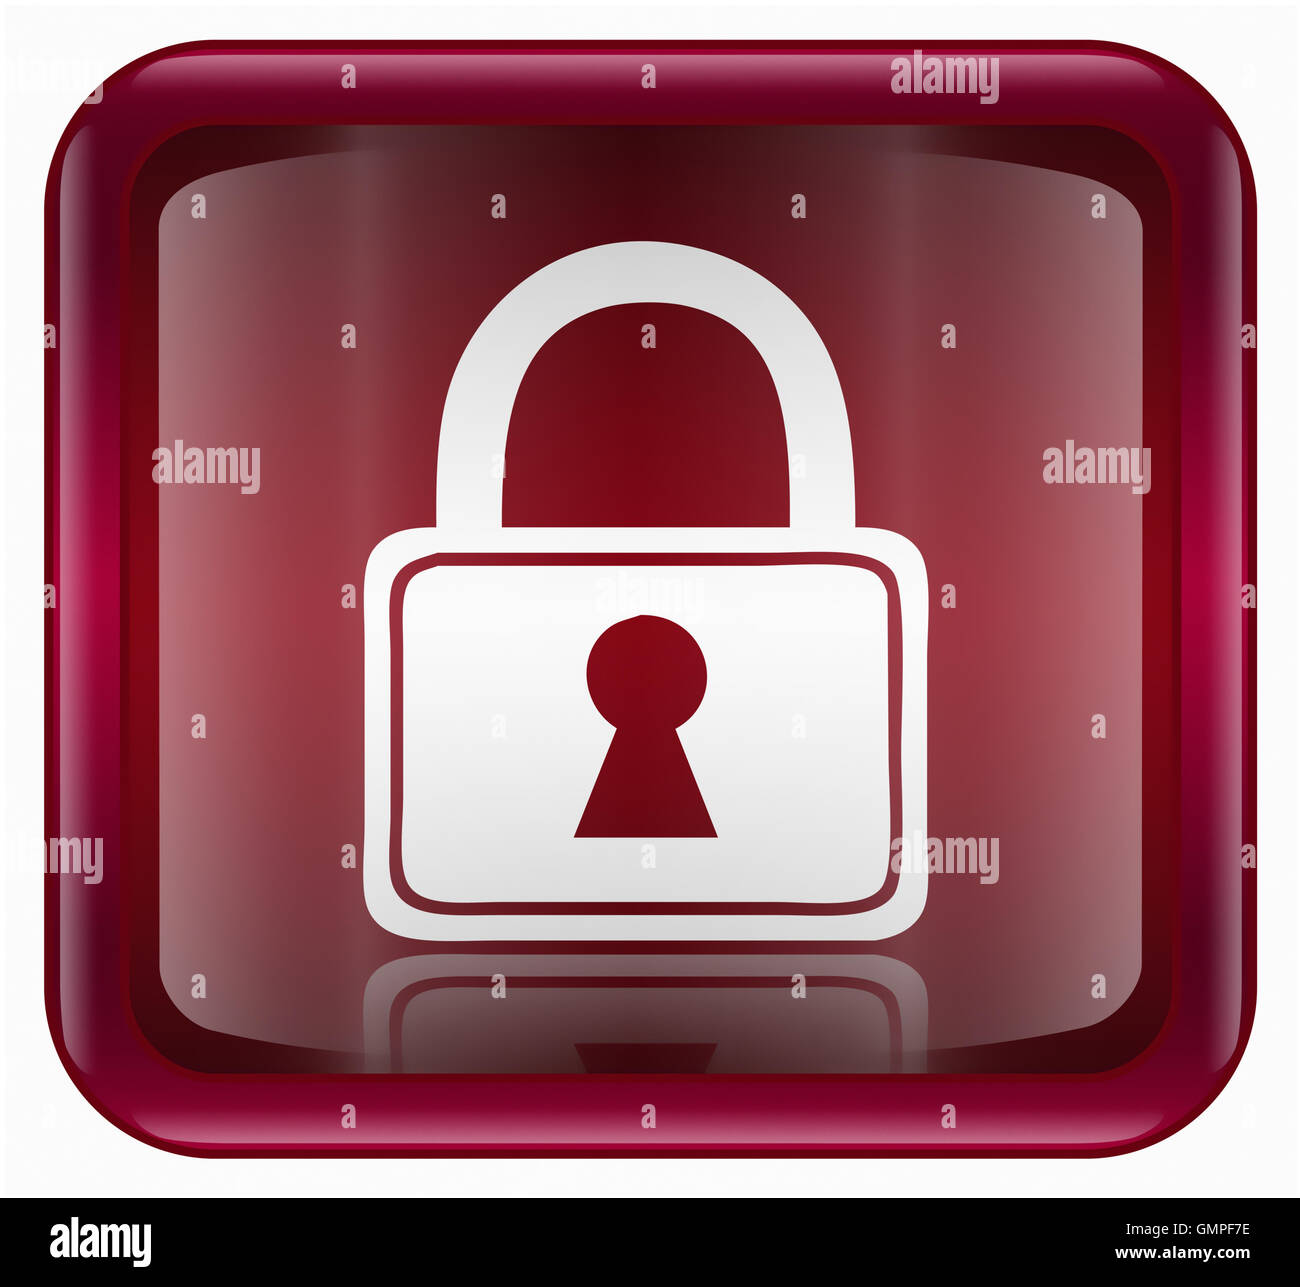 Lock icon red, isolated on white background - Stock Image